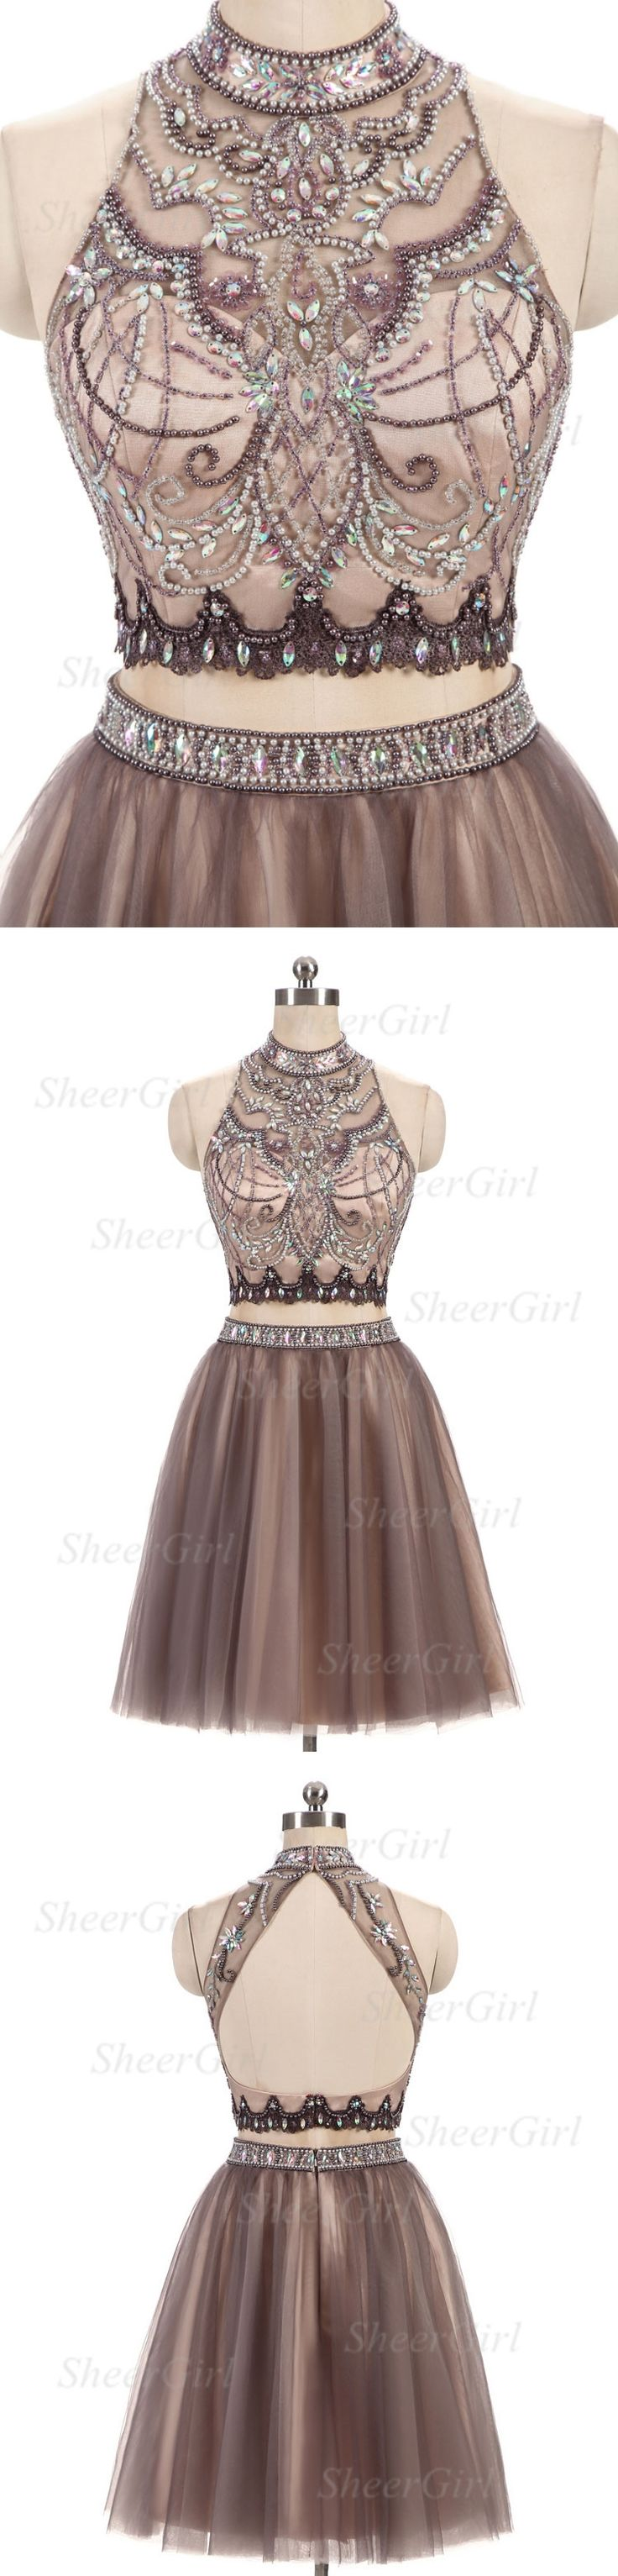 two piece homecoming dresses,beaded homecoming dress,halter homecoming dresses,short prom dress,shinny homecoming dresses,2017 homecoming dress